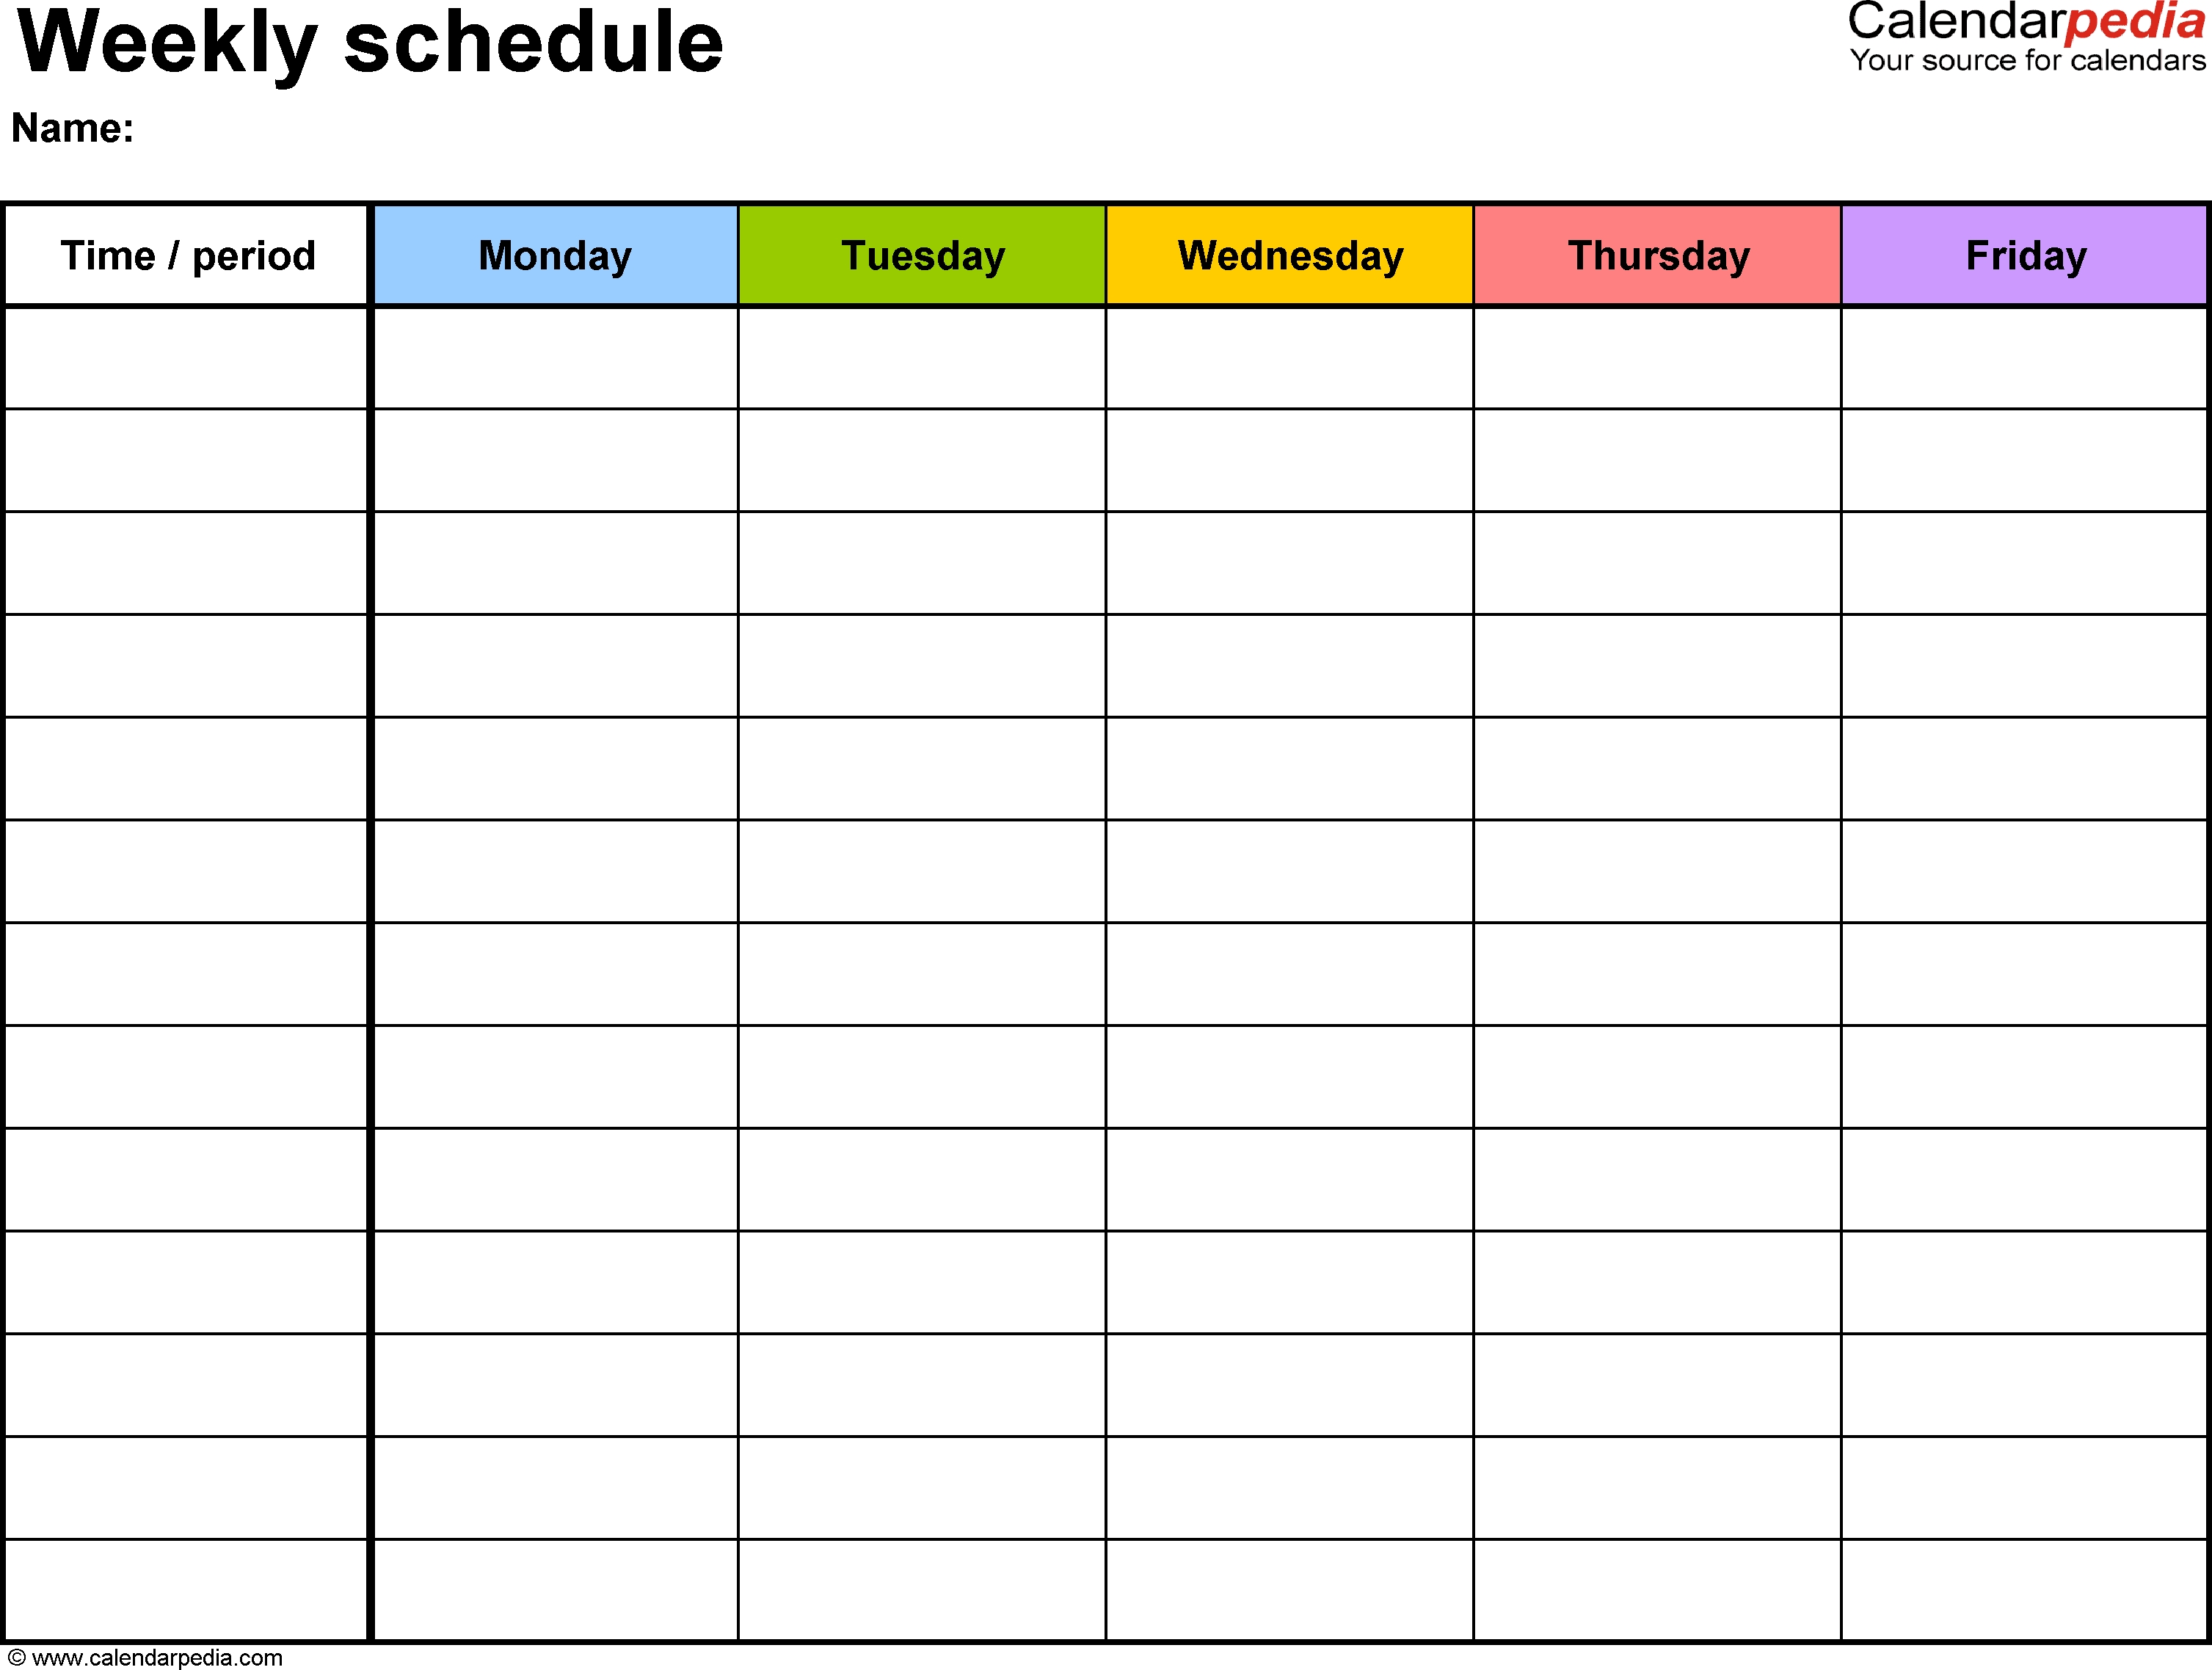 Free Weekly Schedule Templates For Word - 18 Templates with regard to Blank Calendar Template 5 Day